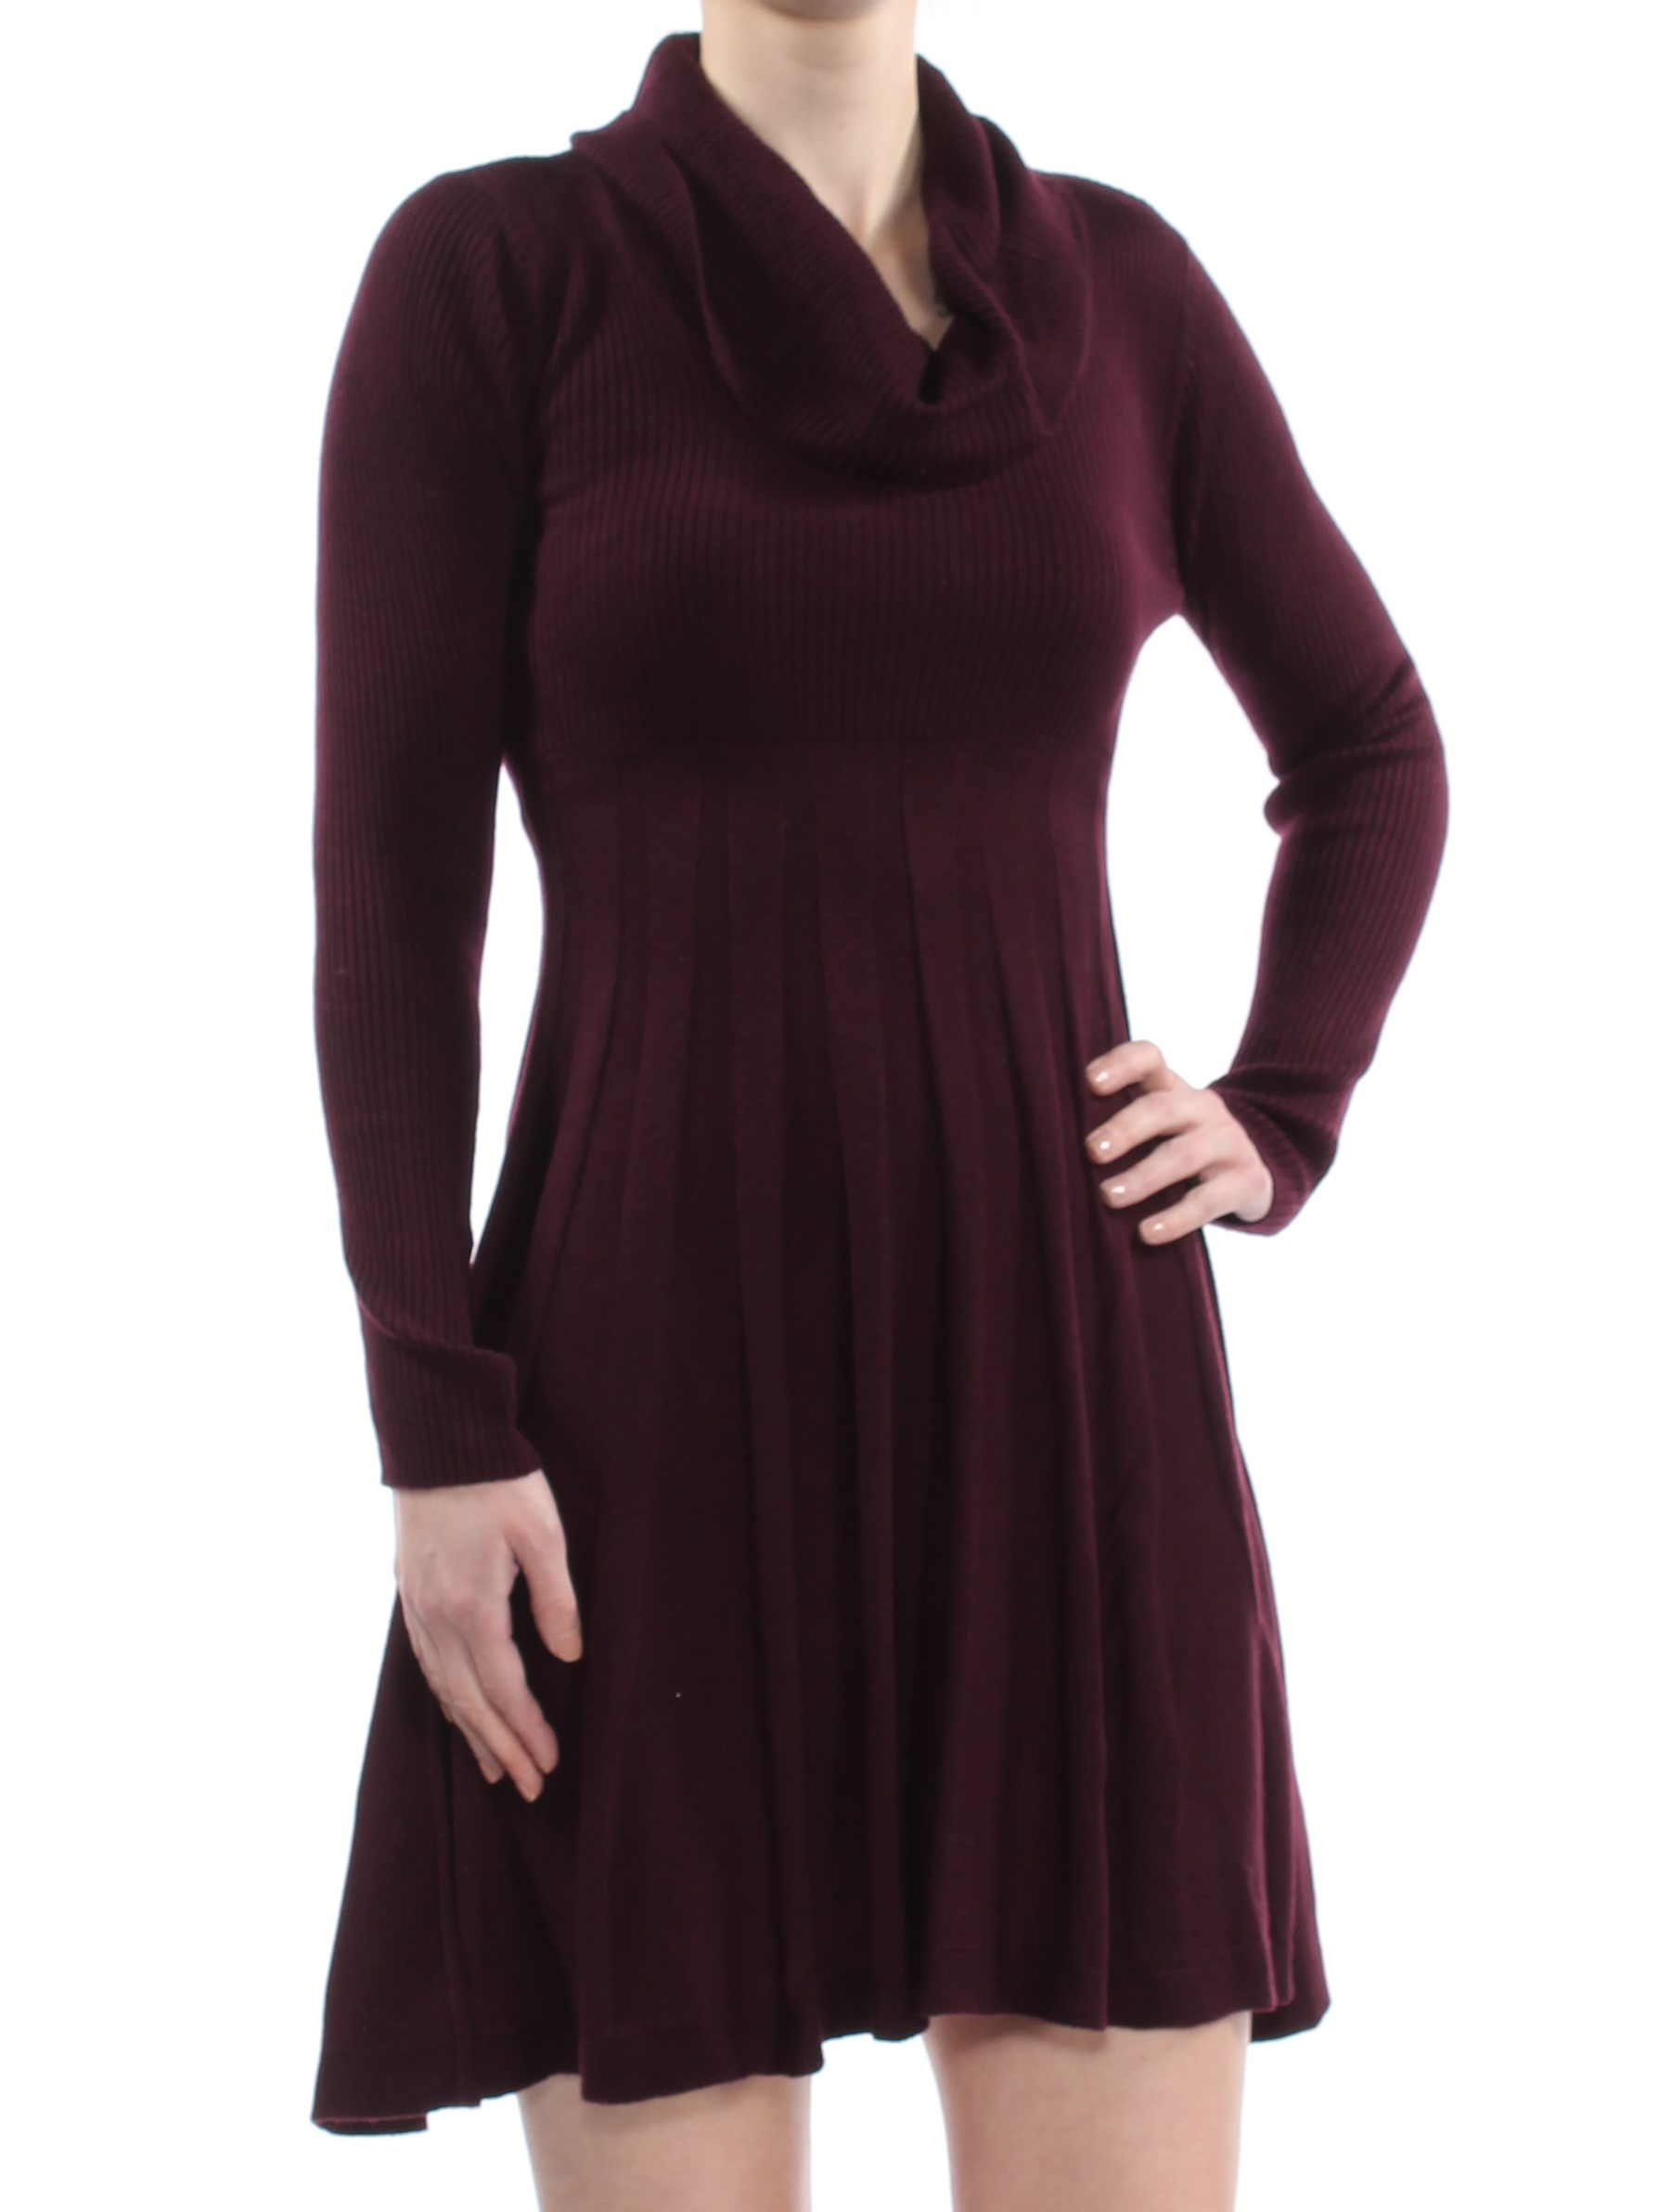 fede8a1cc2c CALVIN KLEIN  134 Womens Burgundy Cowl Neck Sweater Dress XS Petites ...